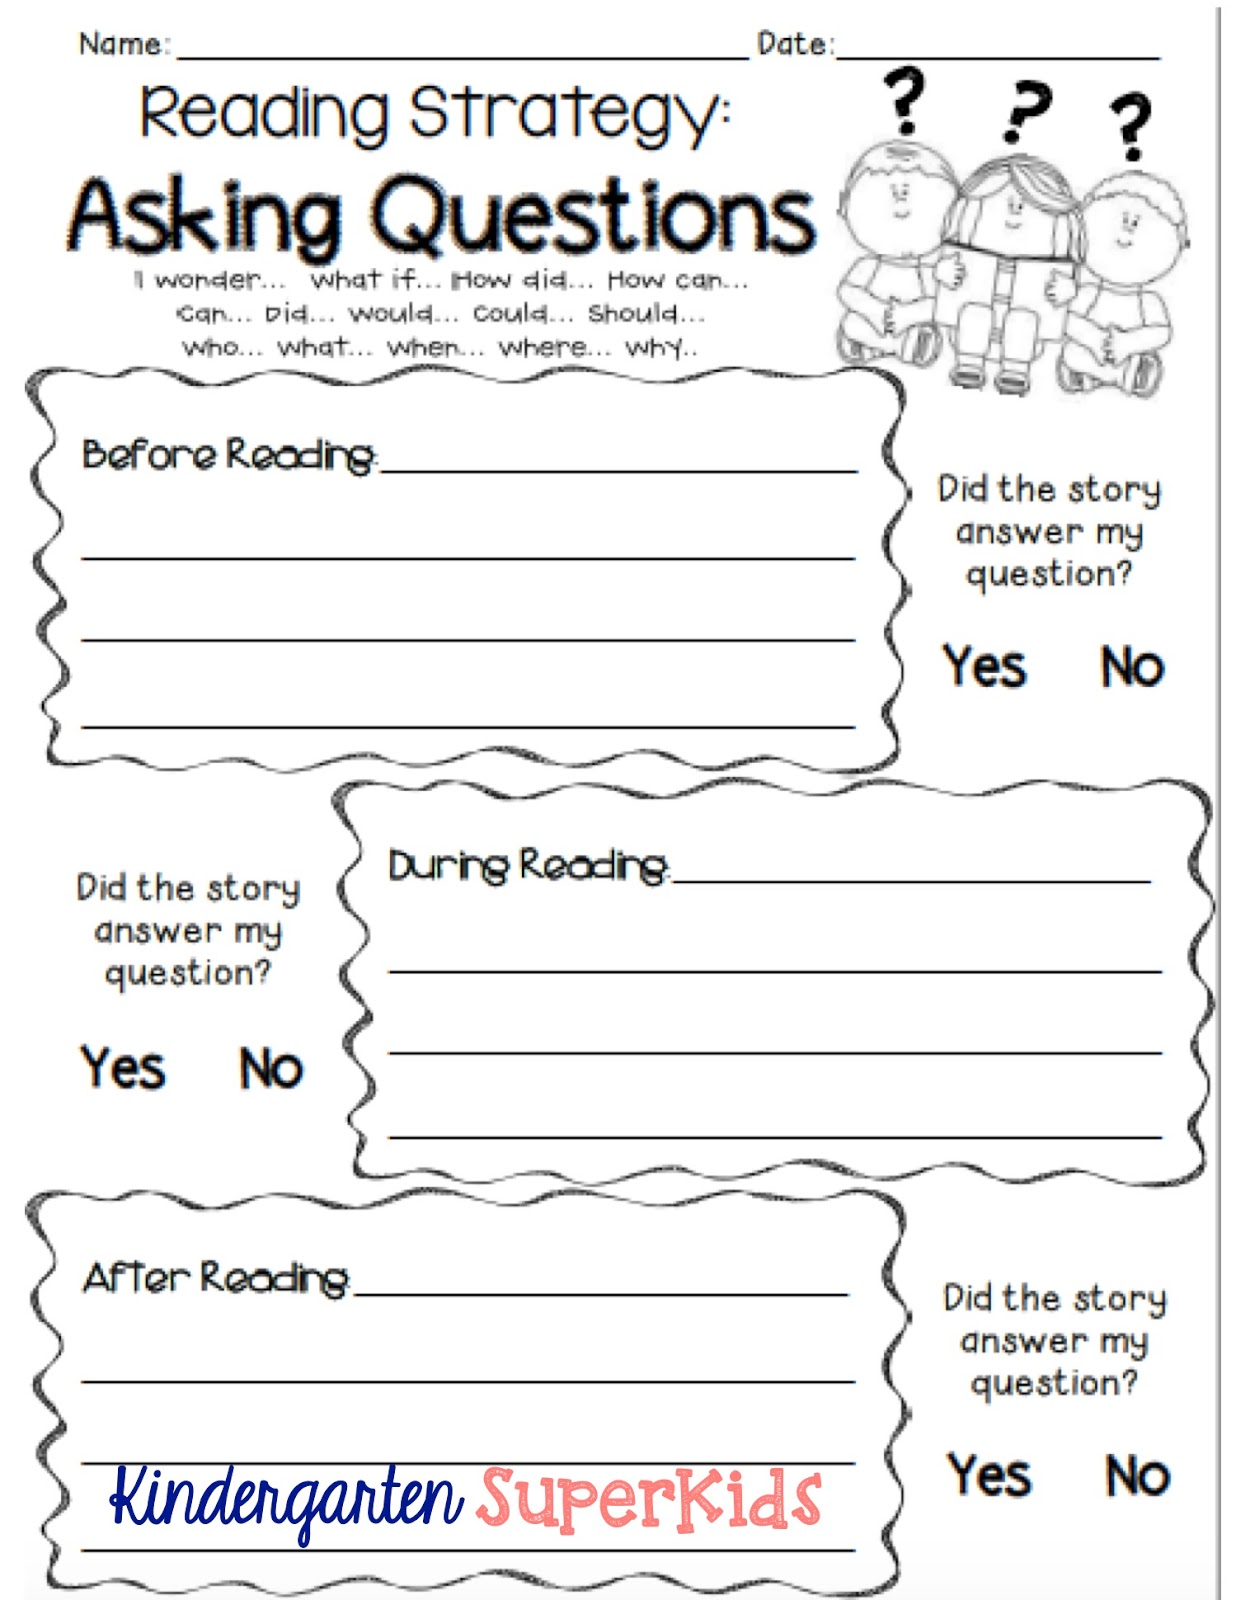 Kindergarten Superkids Asking Questions A Reading